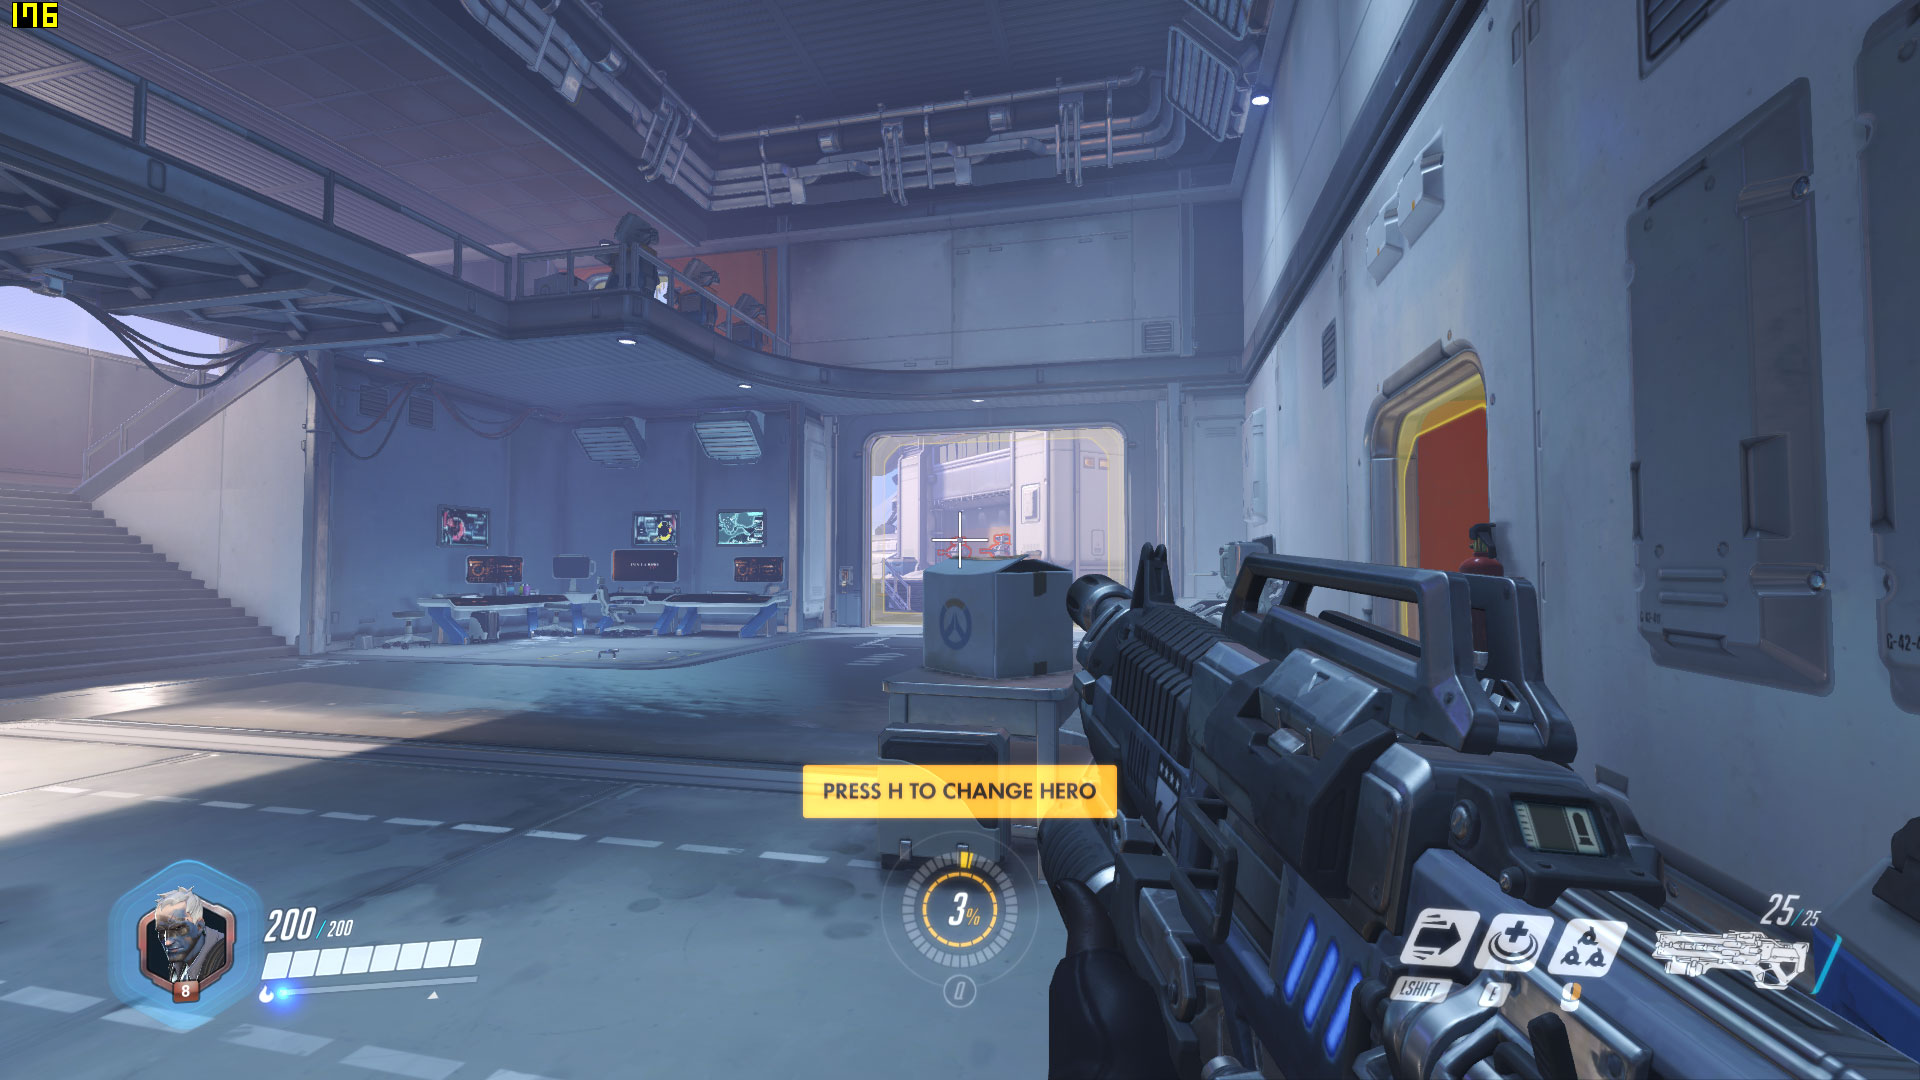 Overwatch settings guide: recommended tweaks and GPUs for best FPS